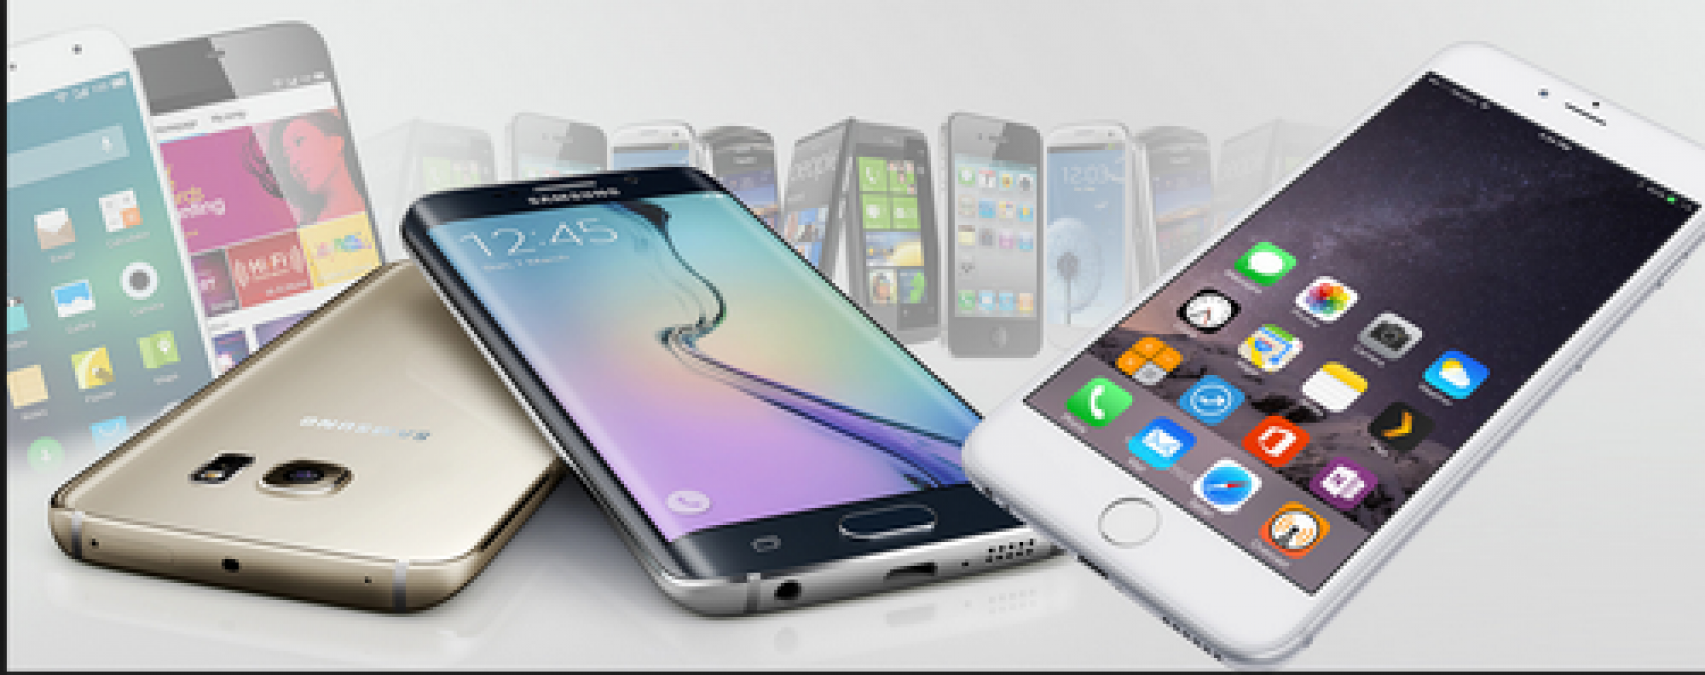 Best Websites to Buy and Sell Used Mobile Phones Online in